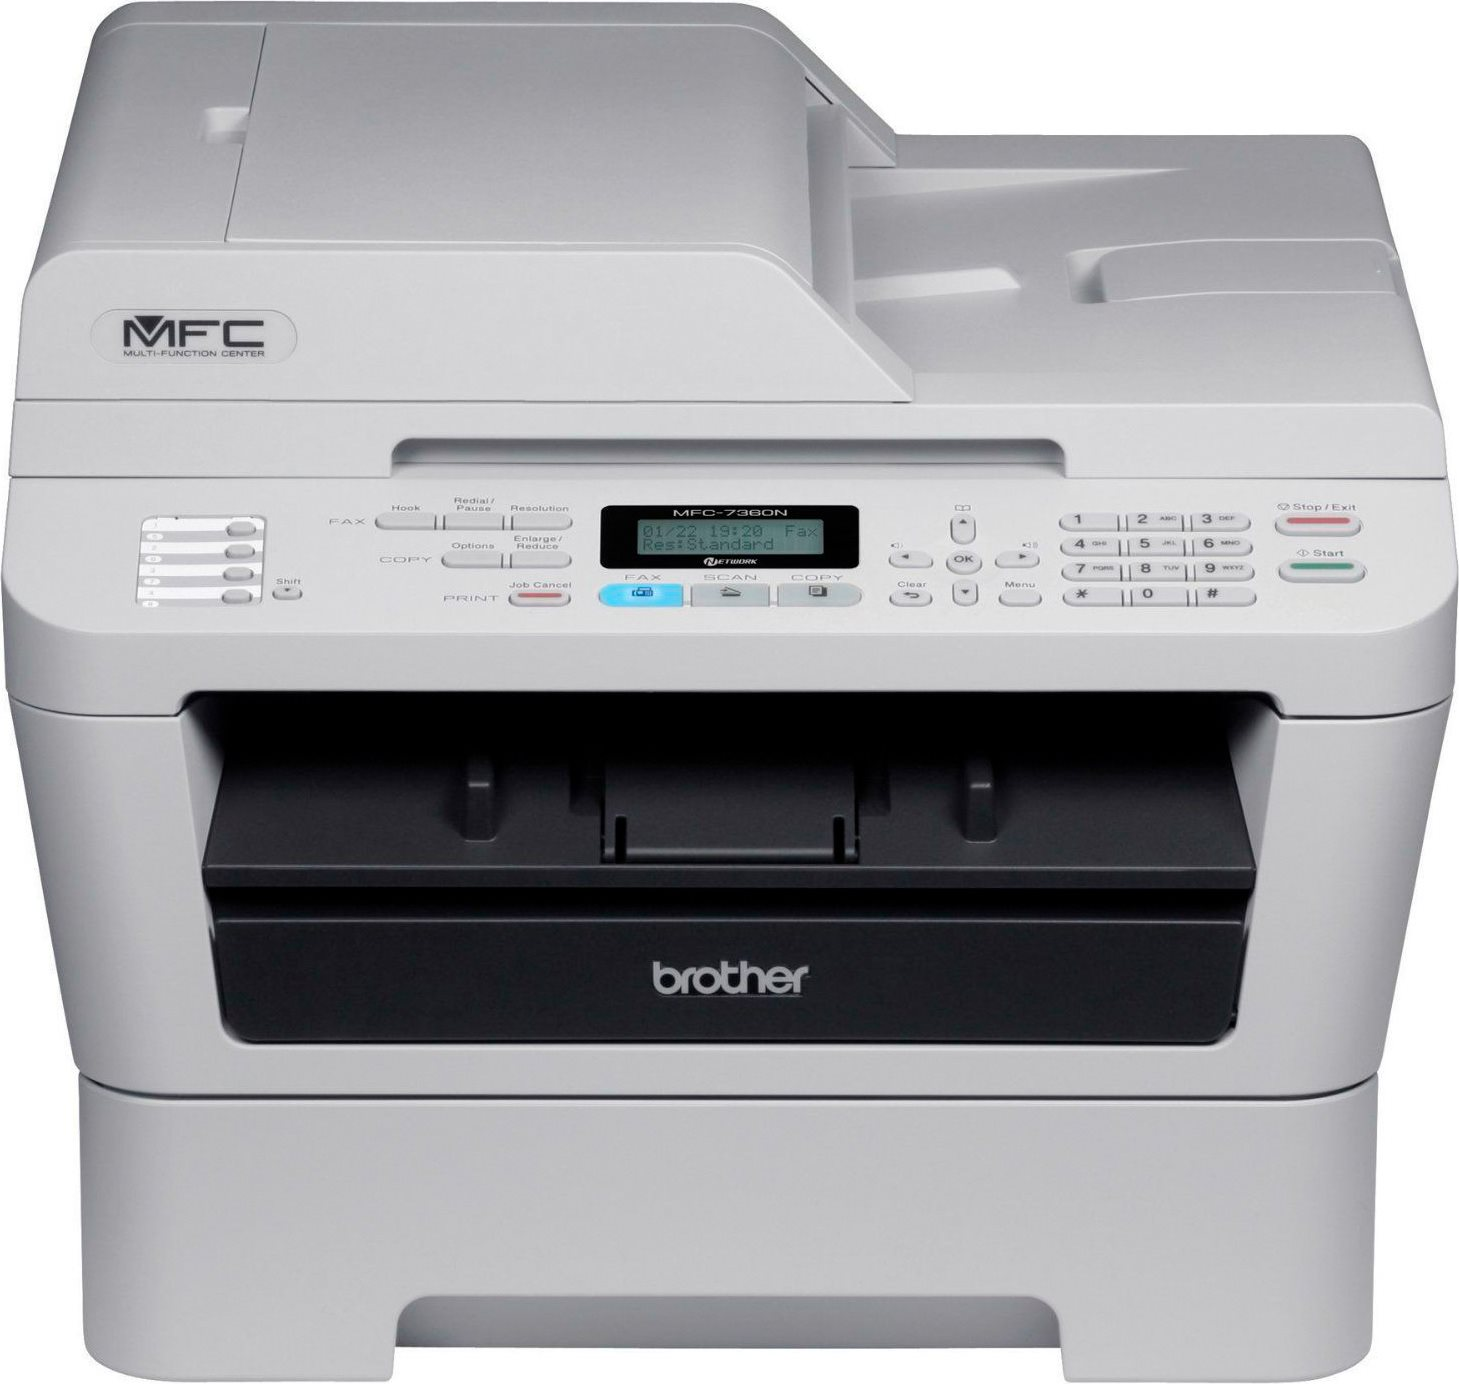 how to send a fax on a brother mfc 7360n